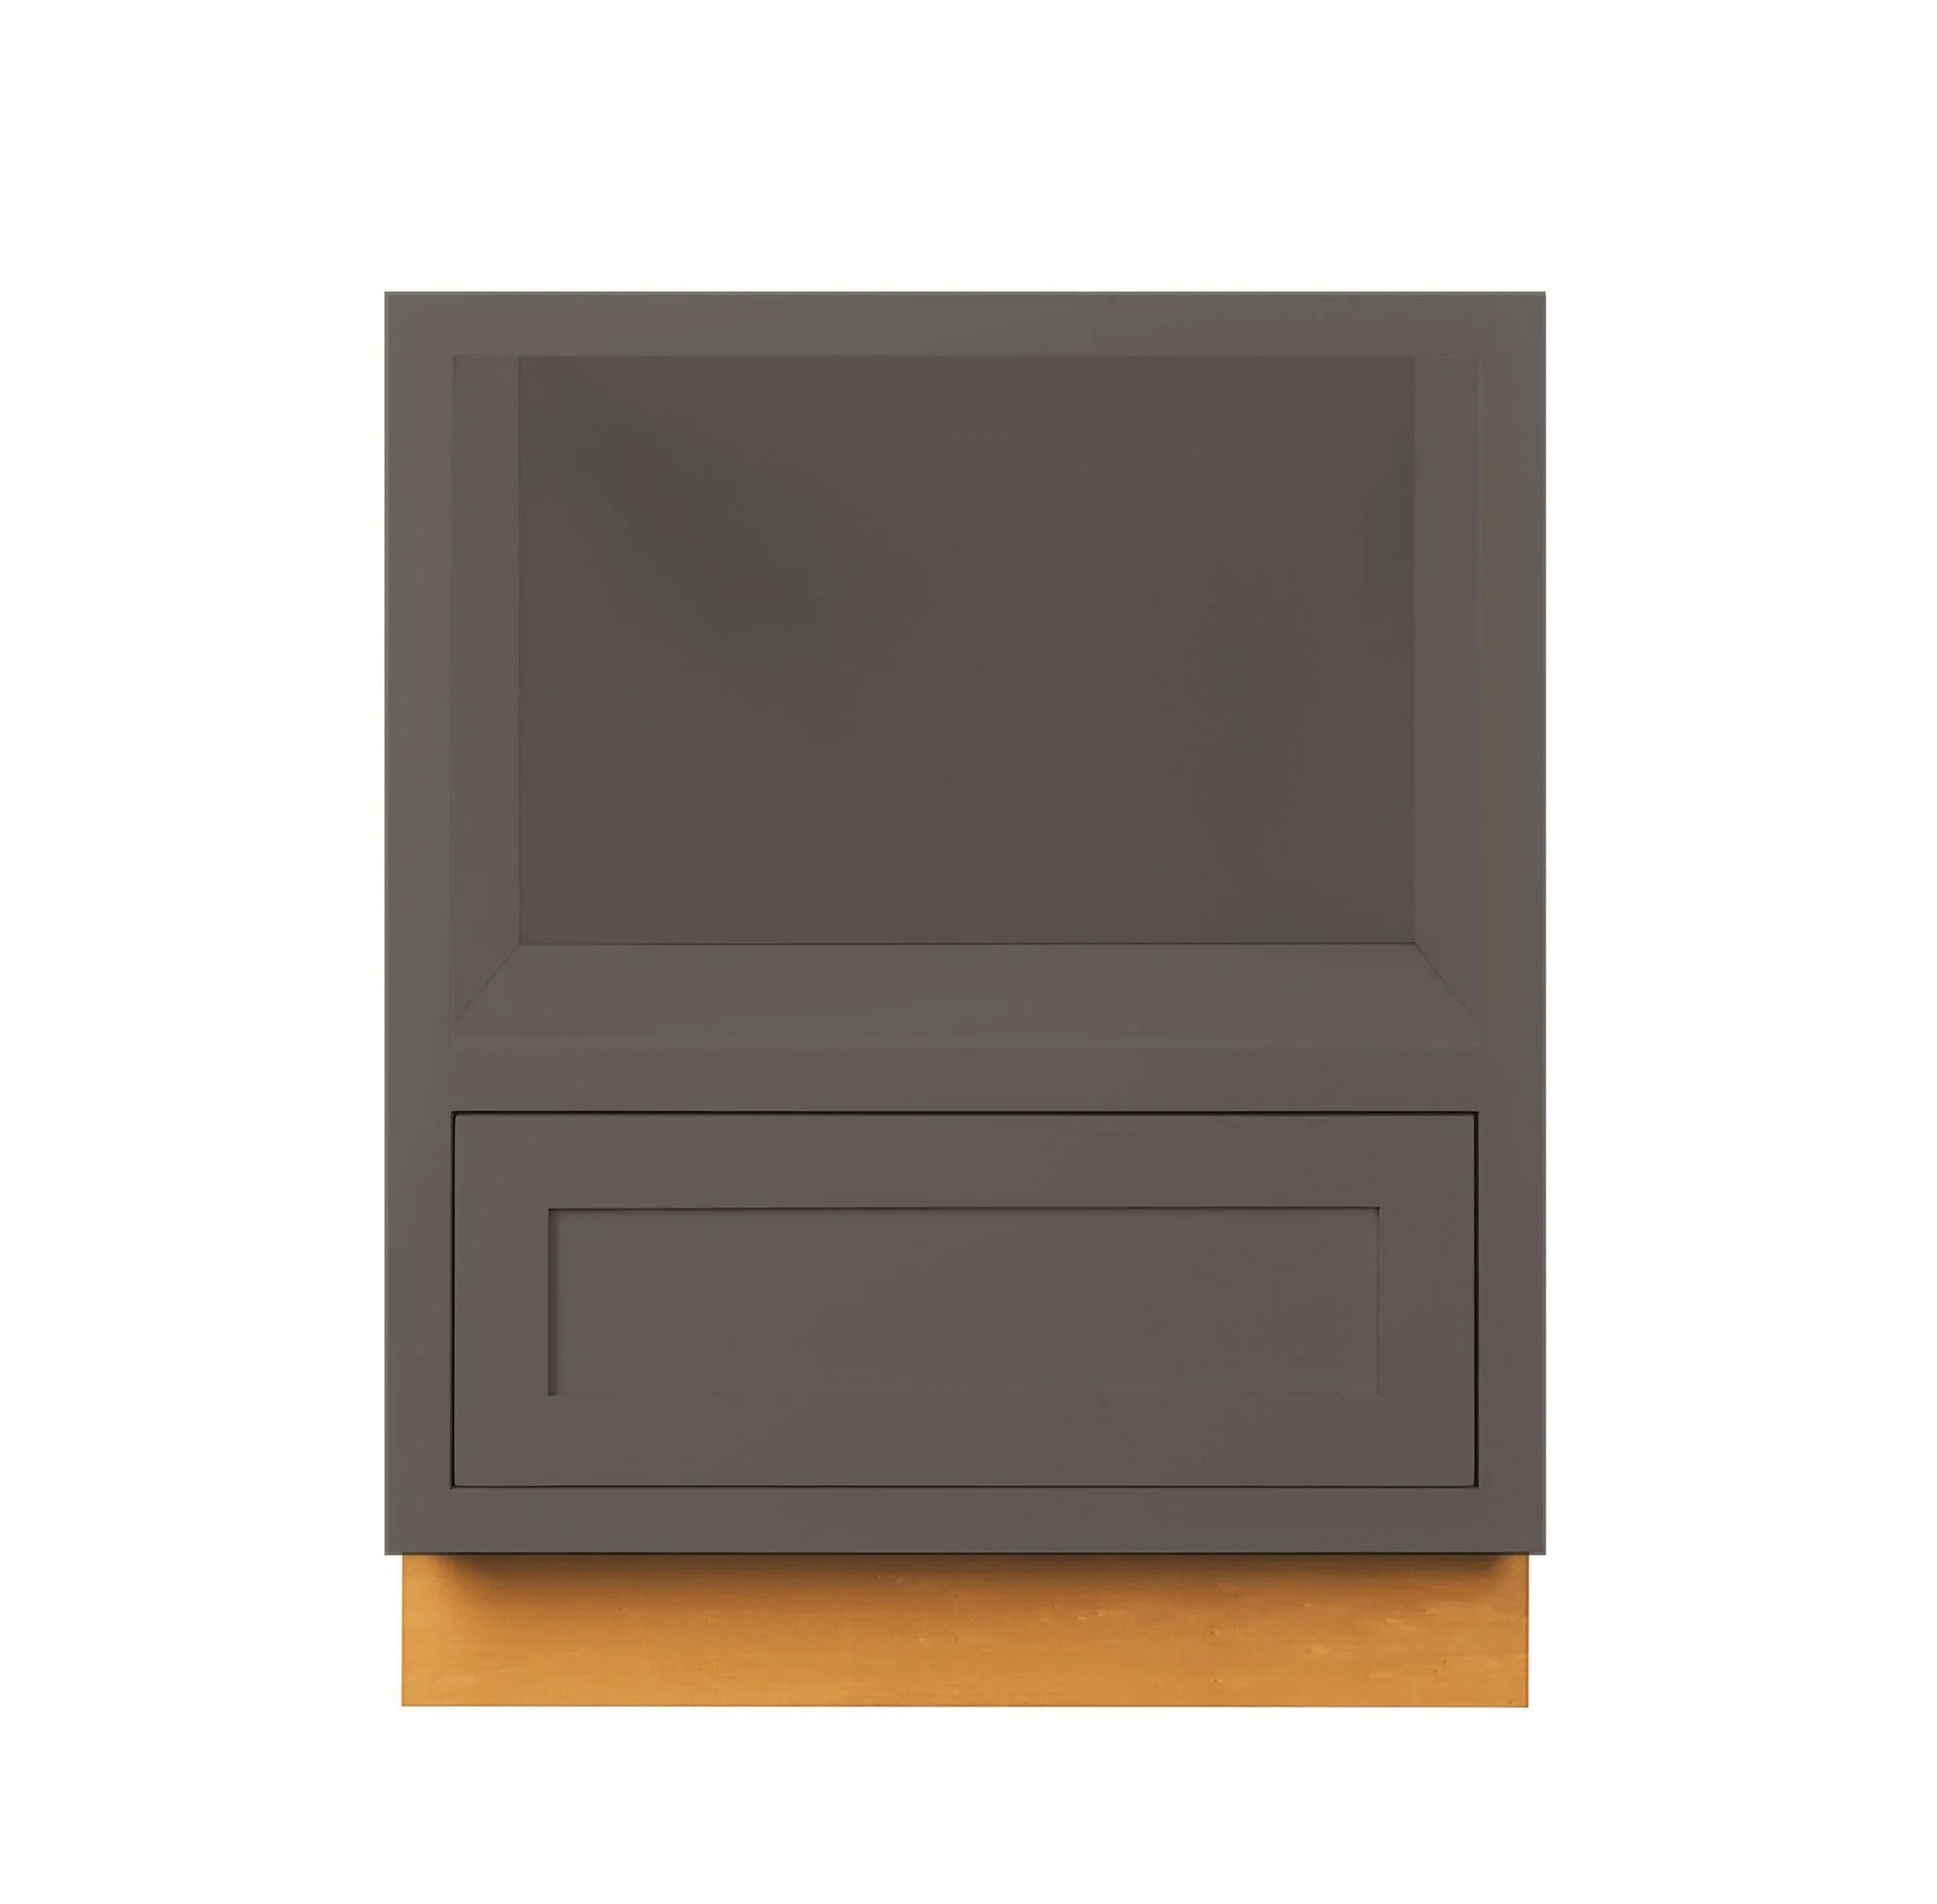 dark gray inset shaker microwave base cabinet 27 limited stock call for ship date